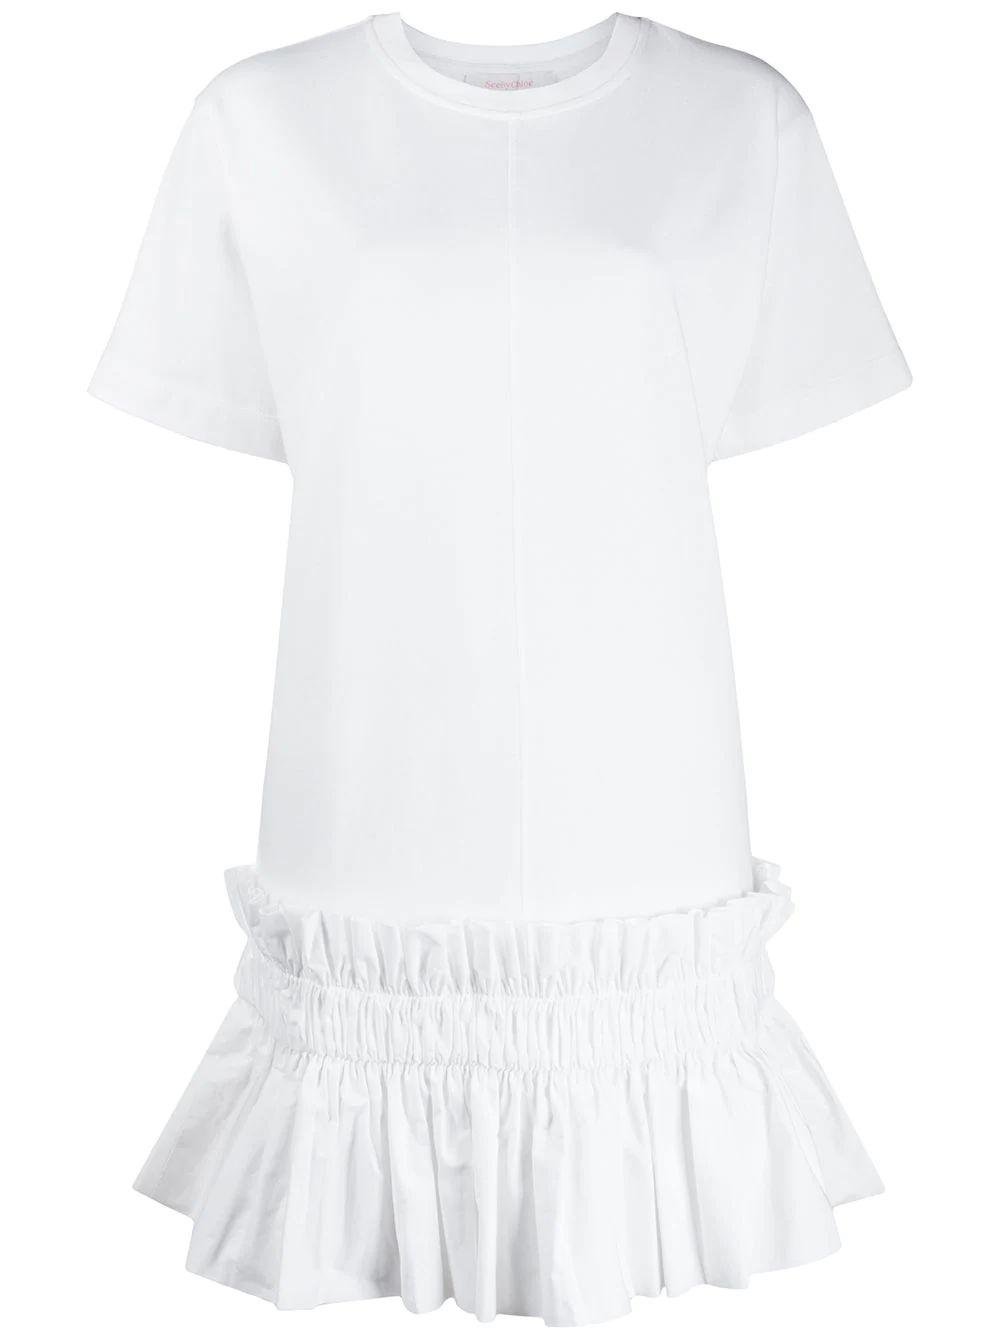 Cotton Embellished Short Sleeve Dress